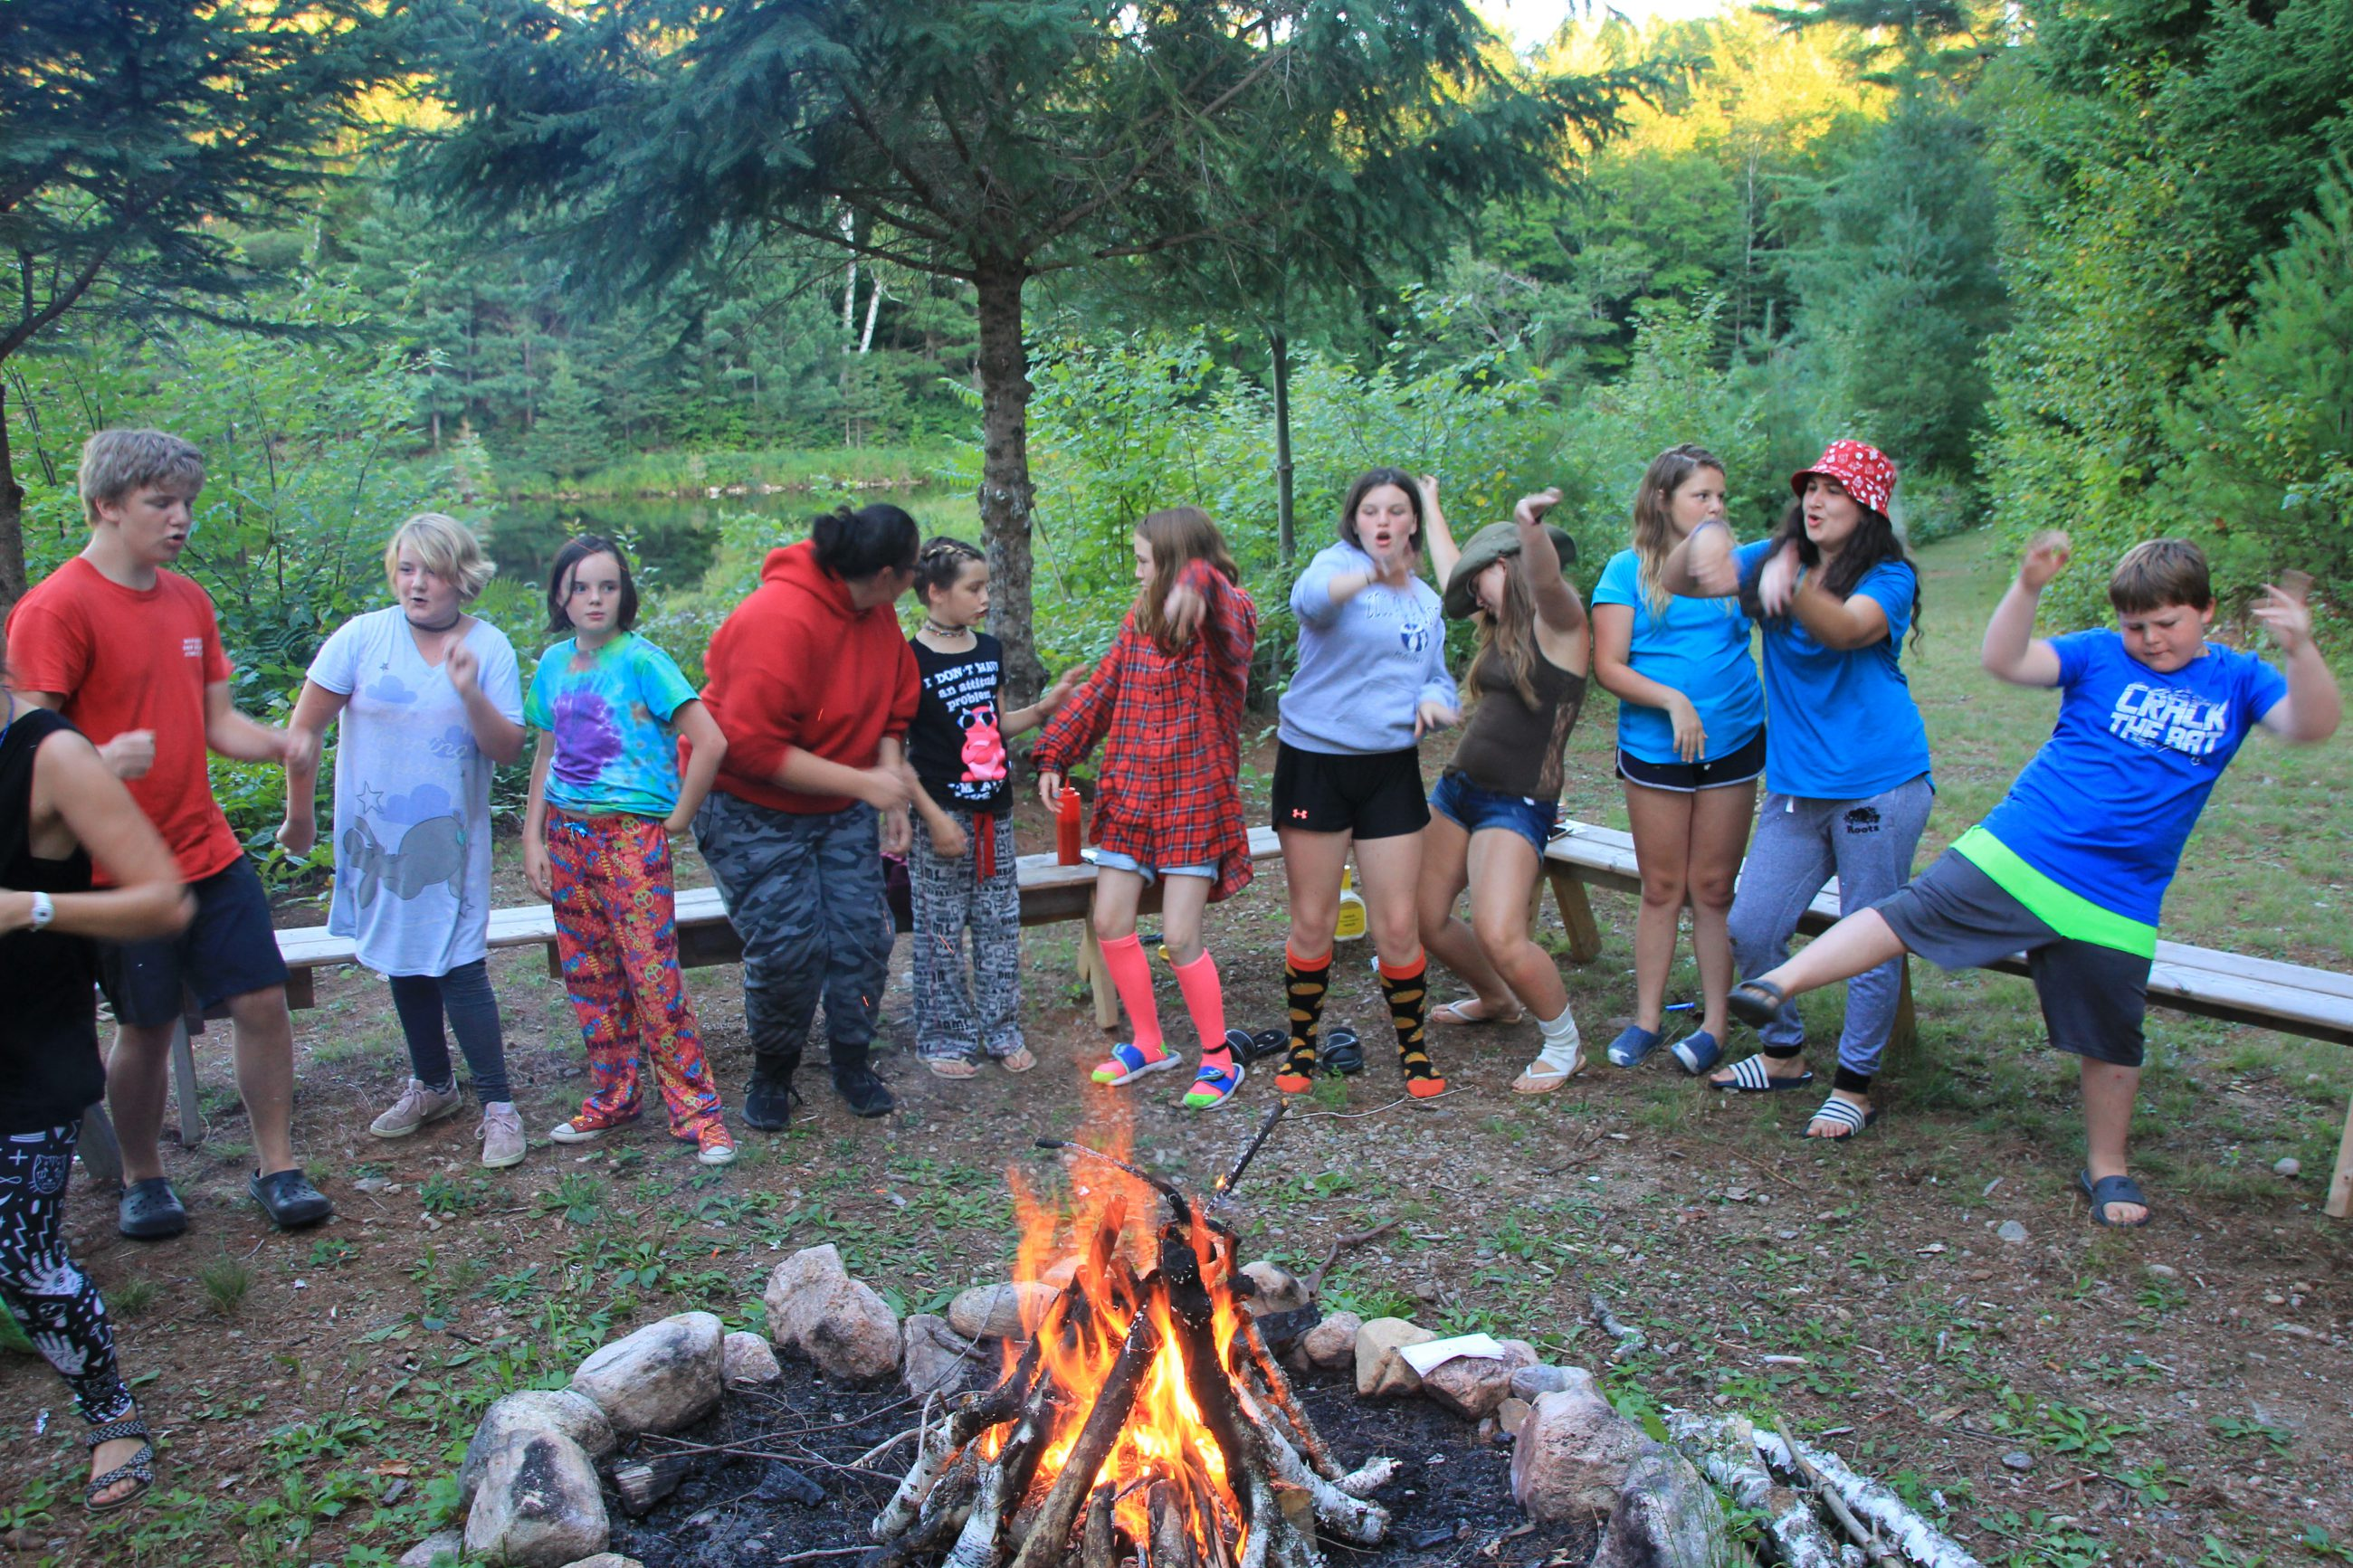 Campers having fun around the campfire.